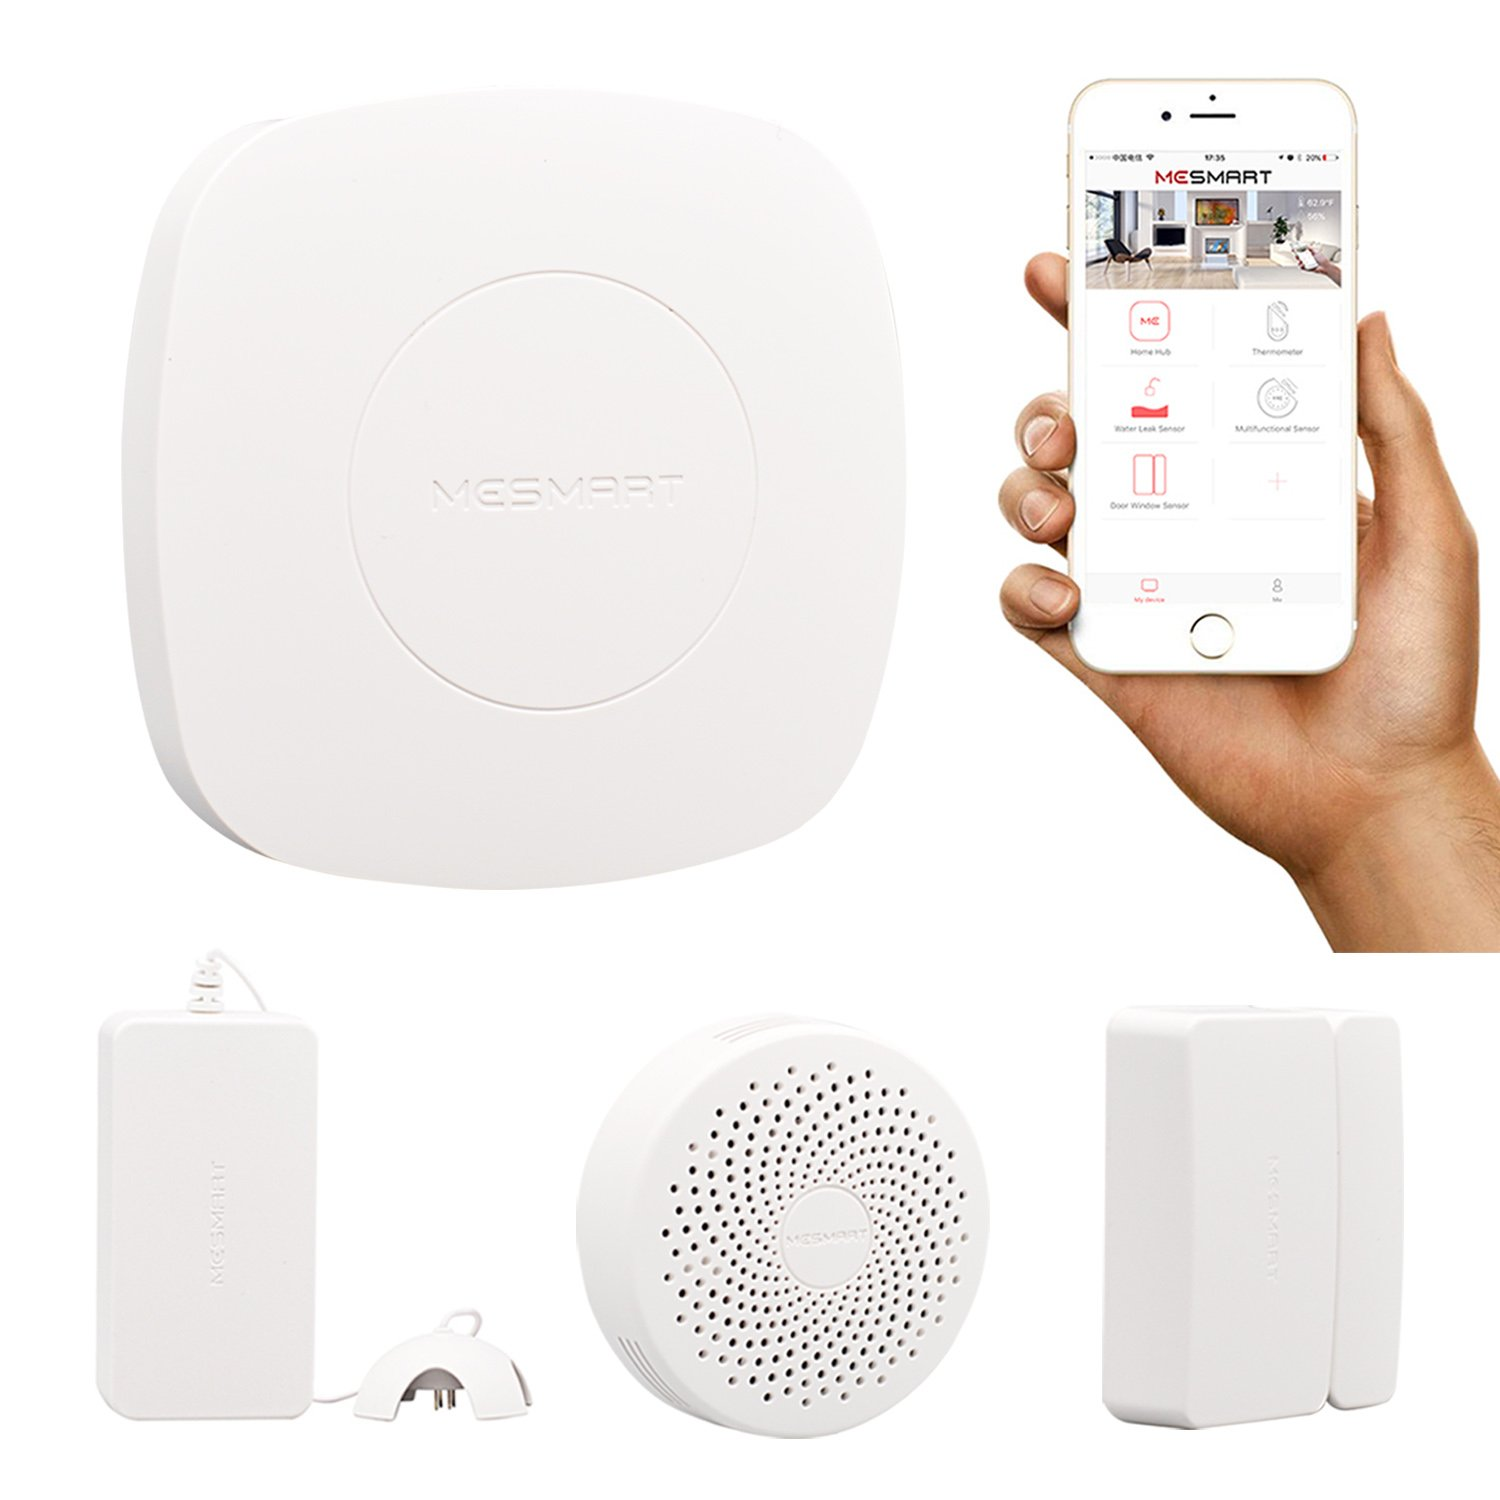 MESMART Smart Automation Monitoring Kit Gateway (Home Hub+Water Leak+Gas Leak+Door Sensor) Contact Magnetic Detector Alarm Zigbee Wireless App Control Compatible with Amaozn Alexa